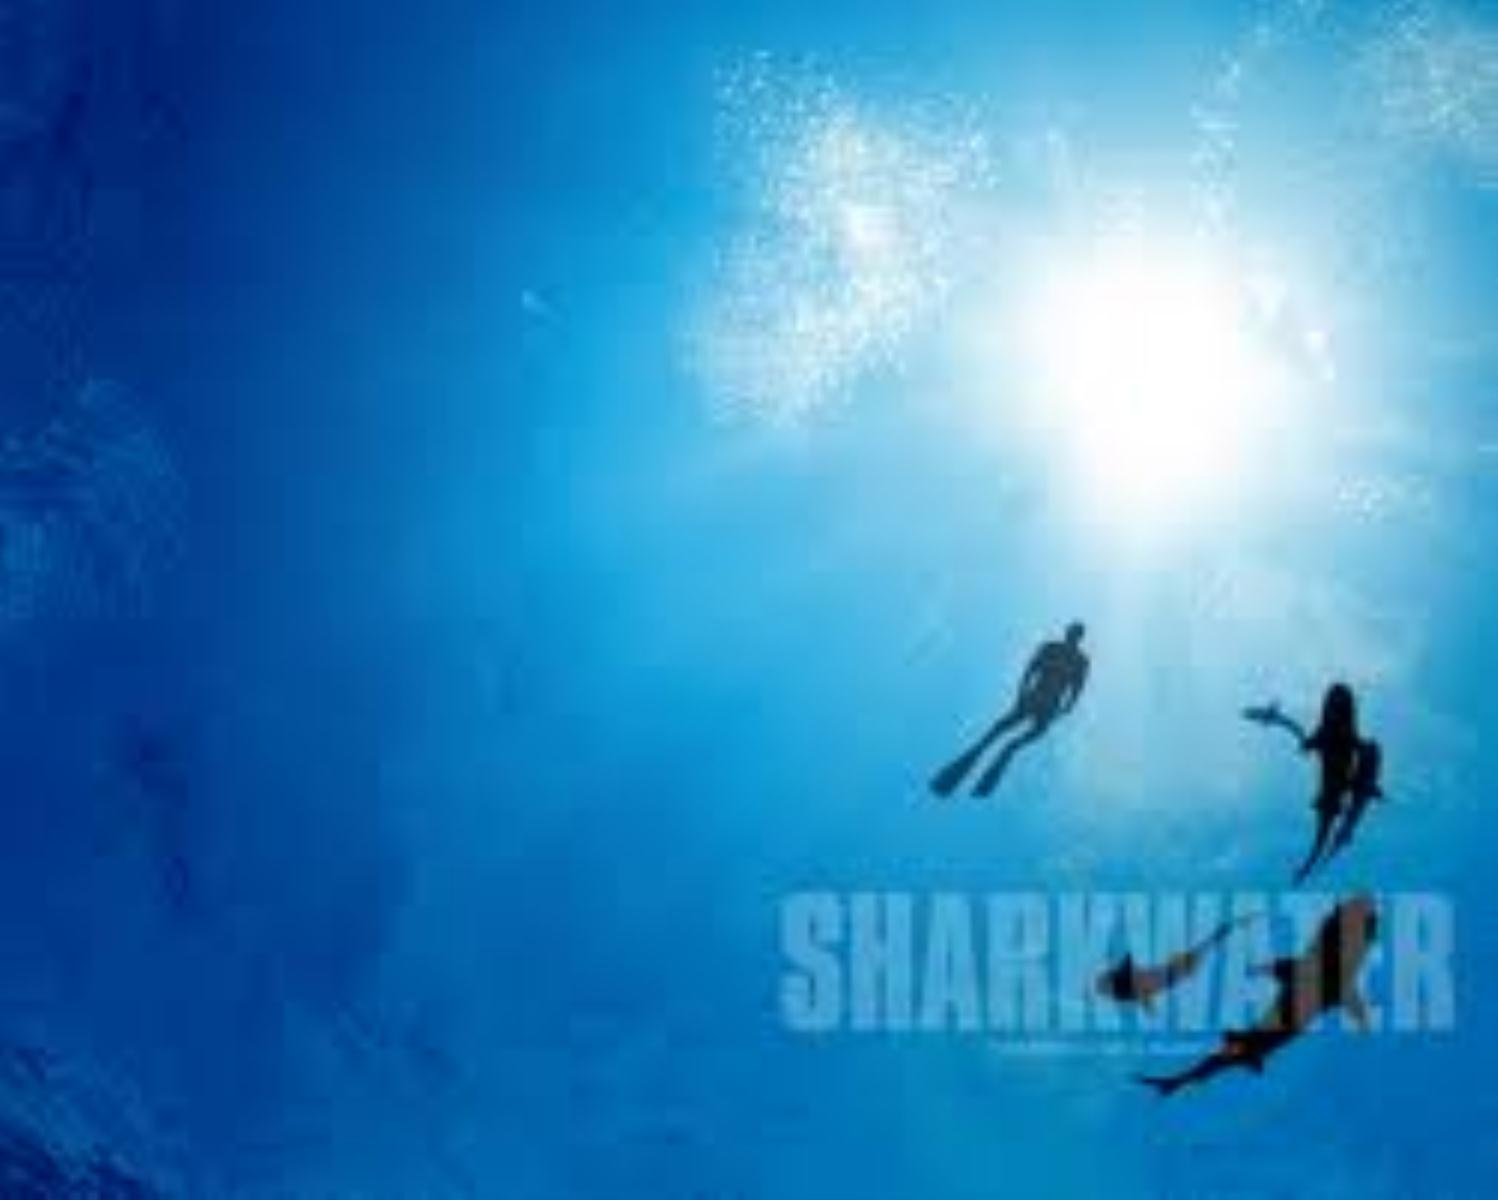 Sharkwater is a 2006 documentary film directed by Rob Stewart